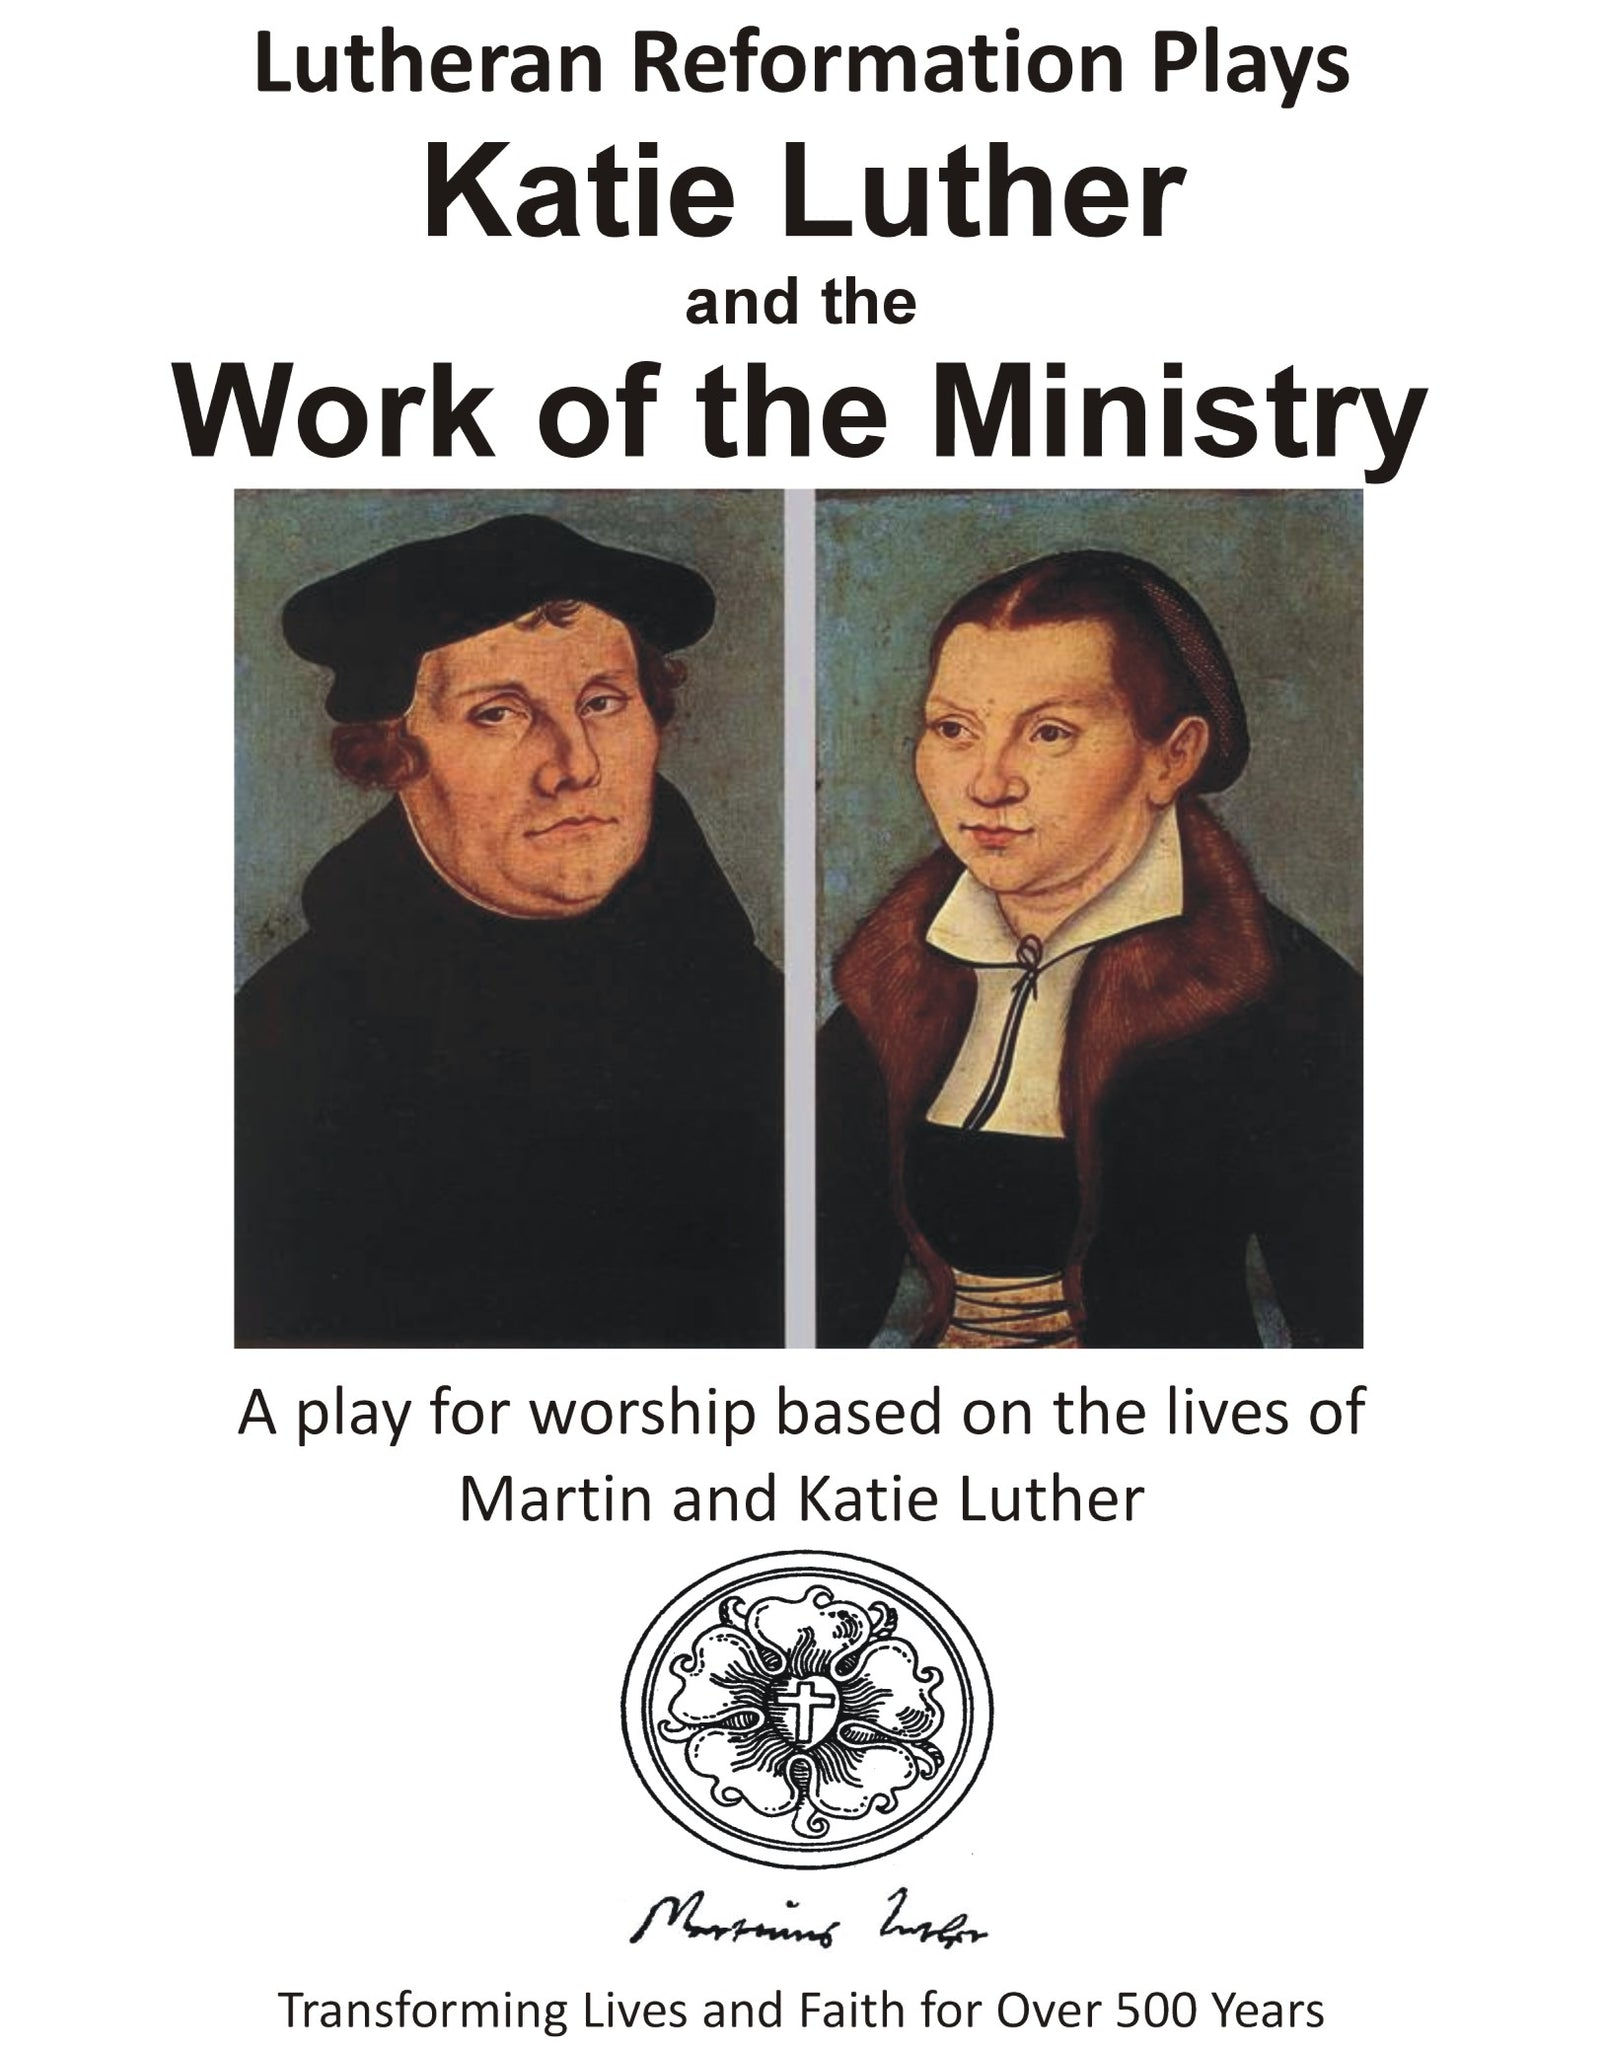 Lutheran Reformation Plays: Katie Luther and the Work of the Ministry